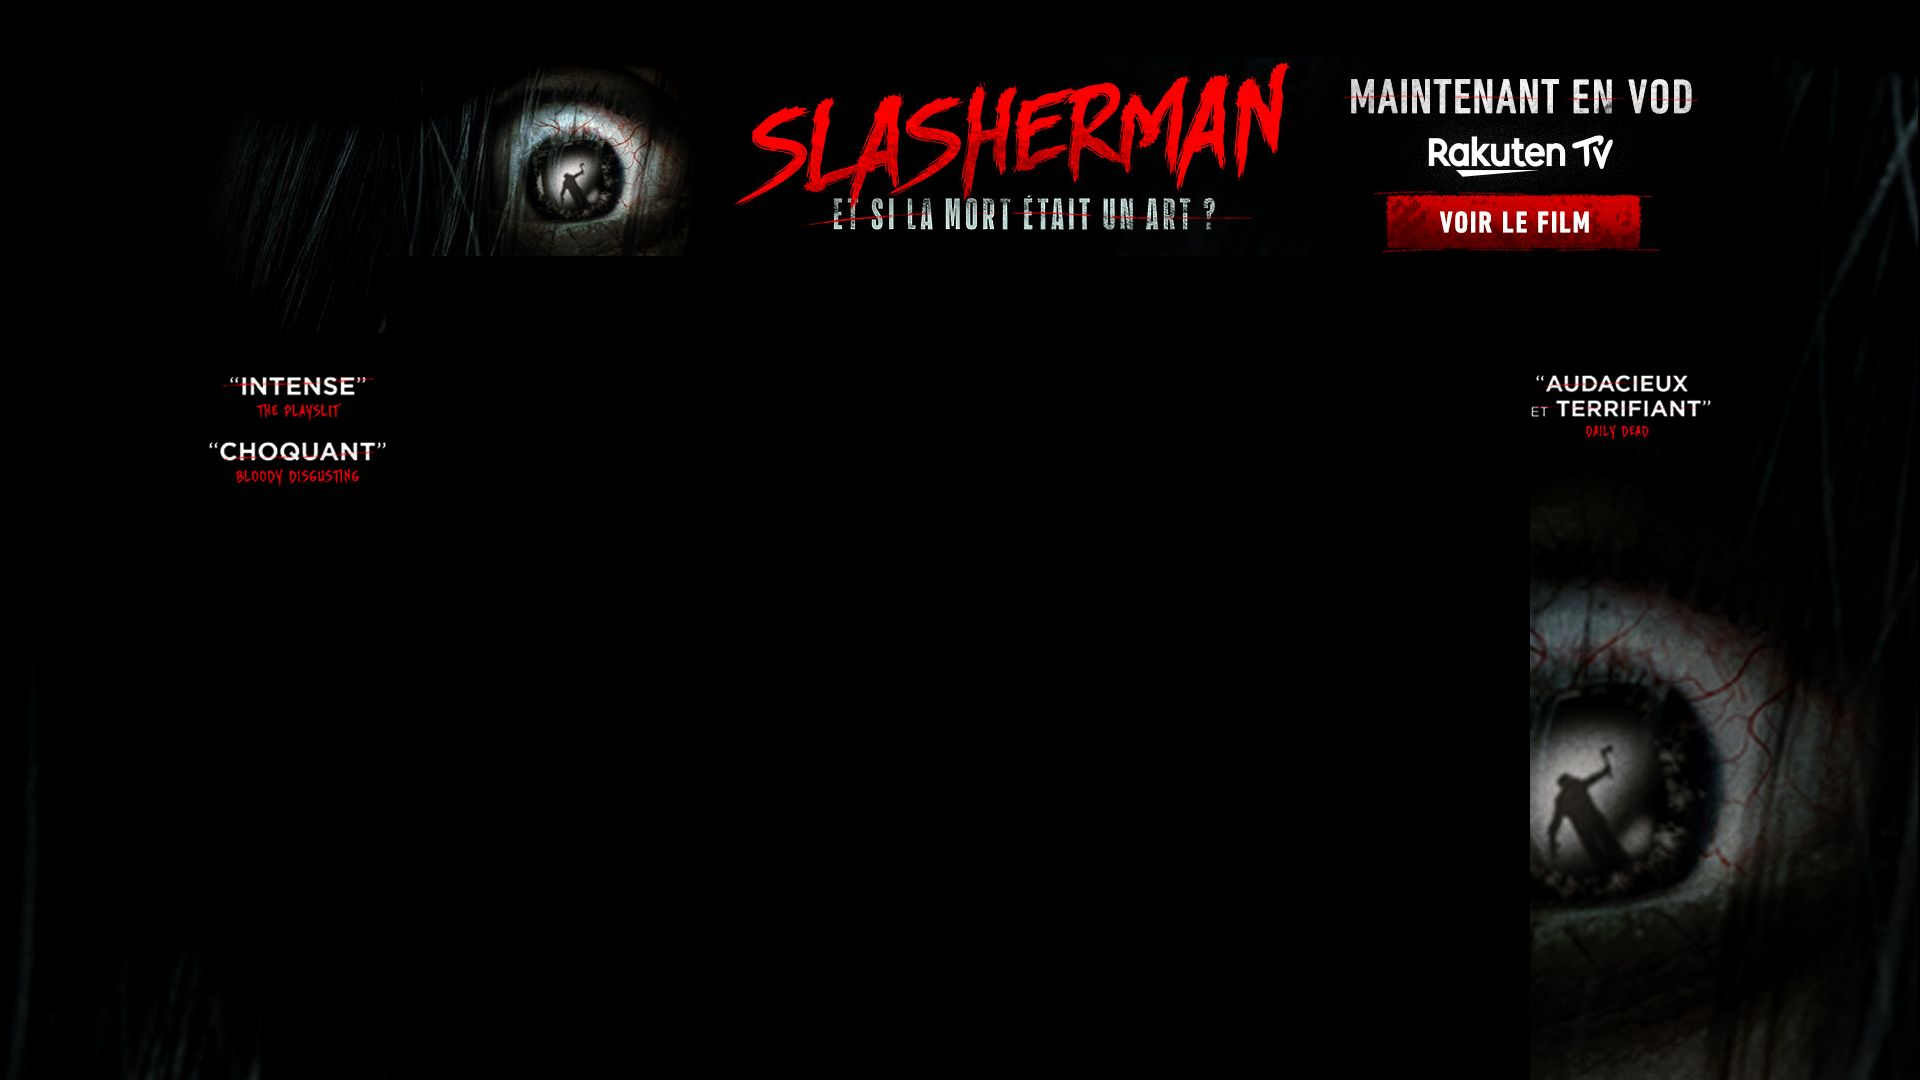 SLASHERMAN 19-23/04